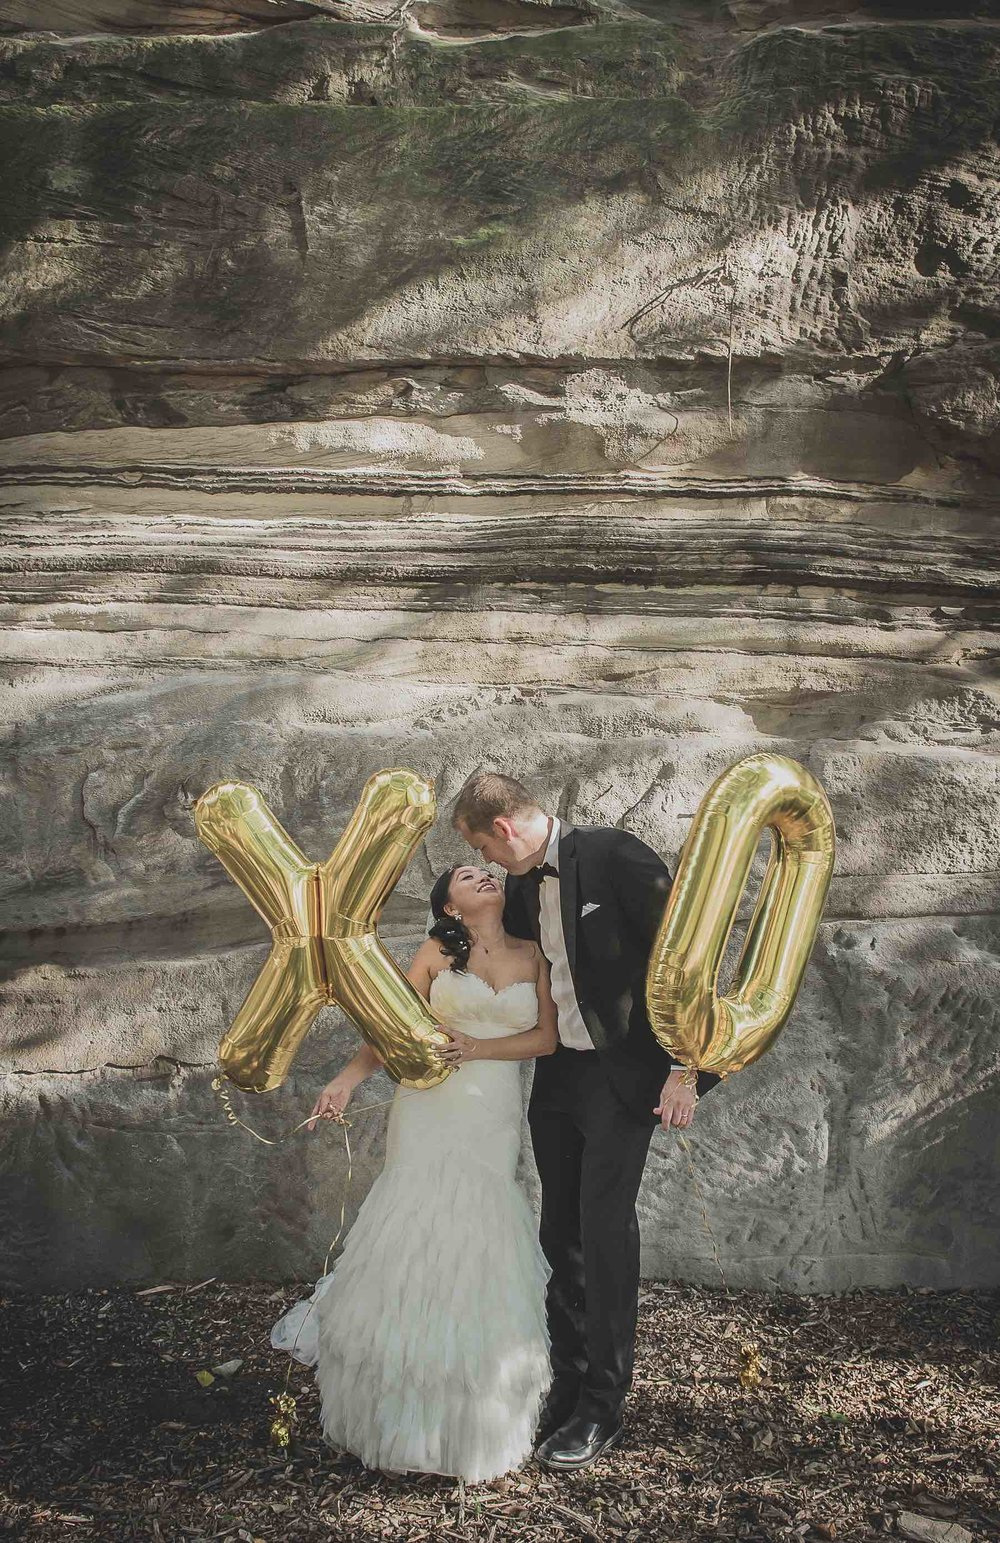 Foil_Baloons_Wedding_Photography_Sydney